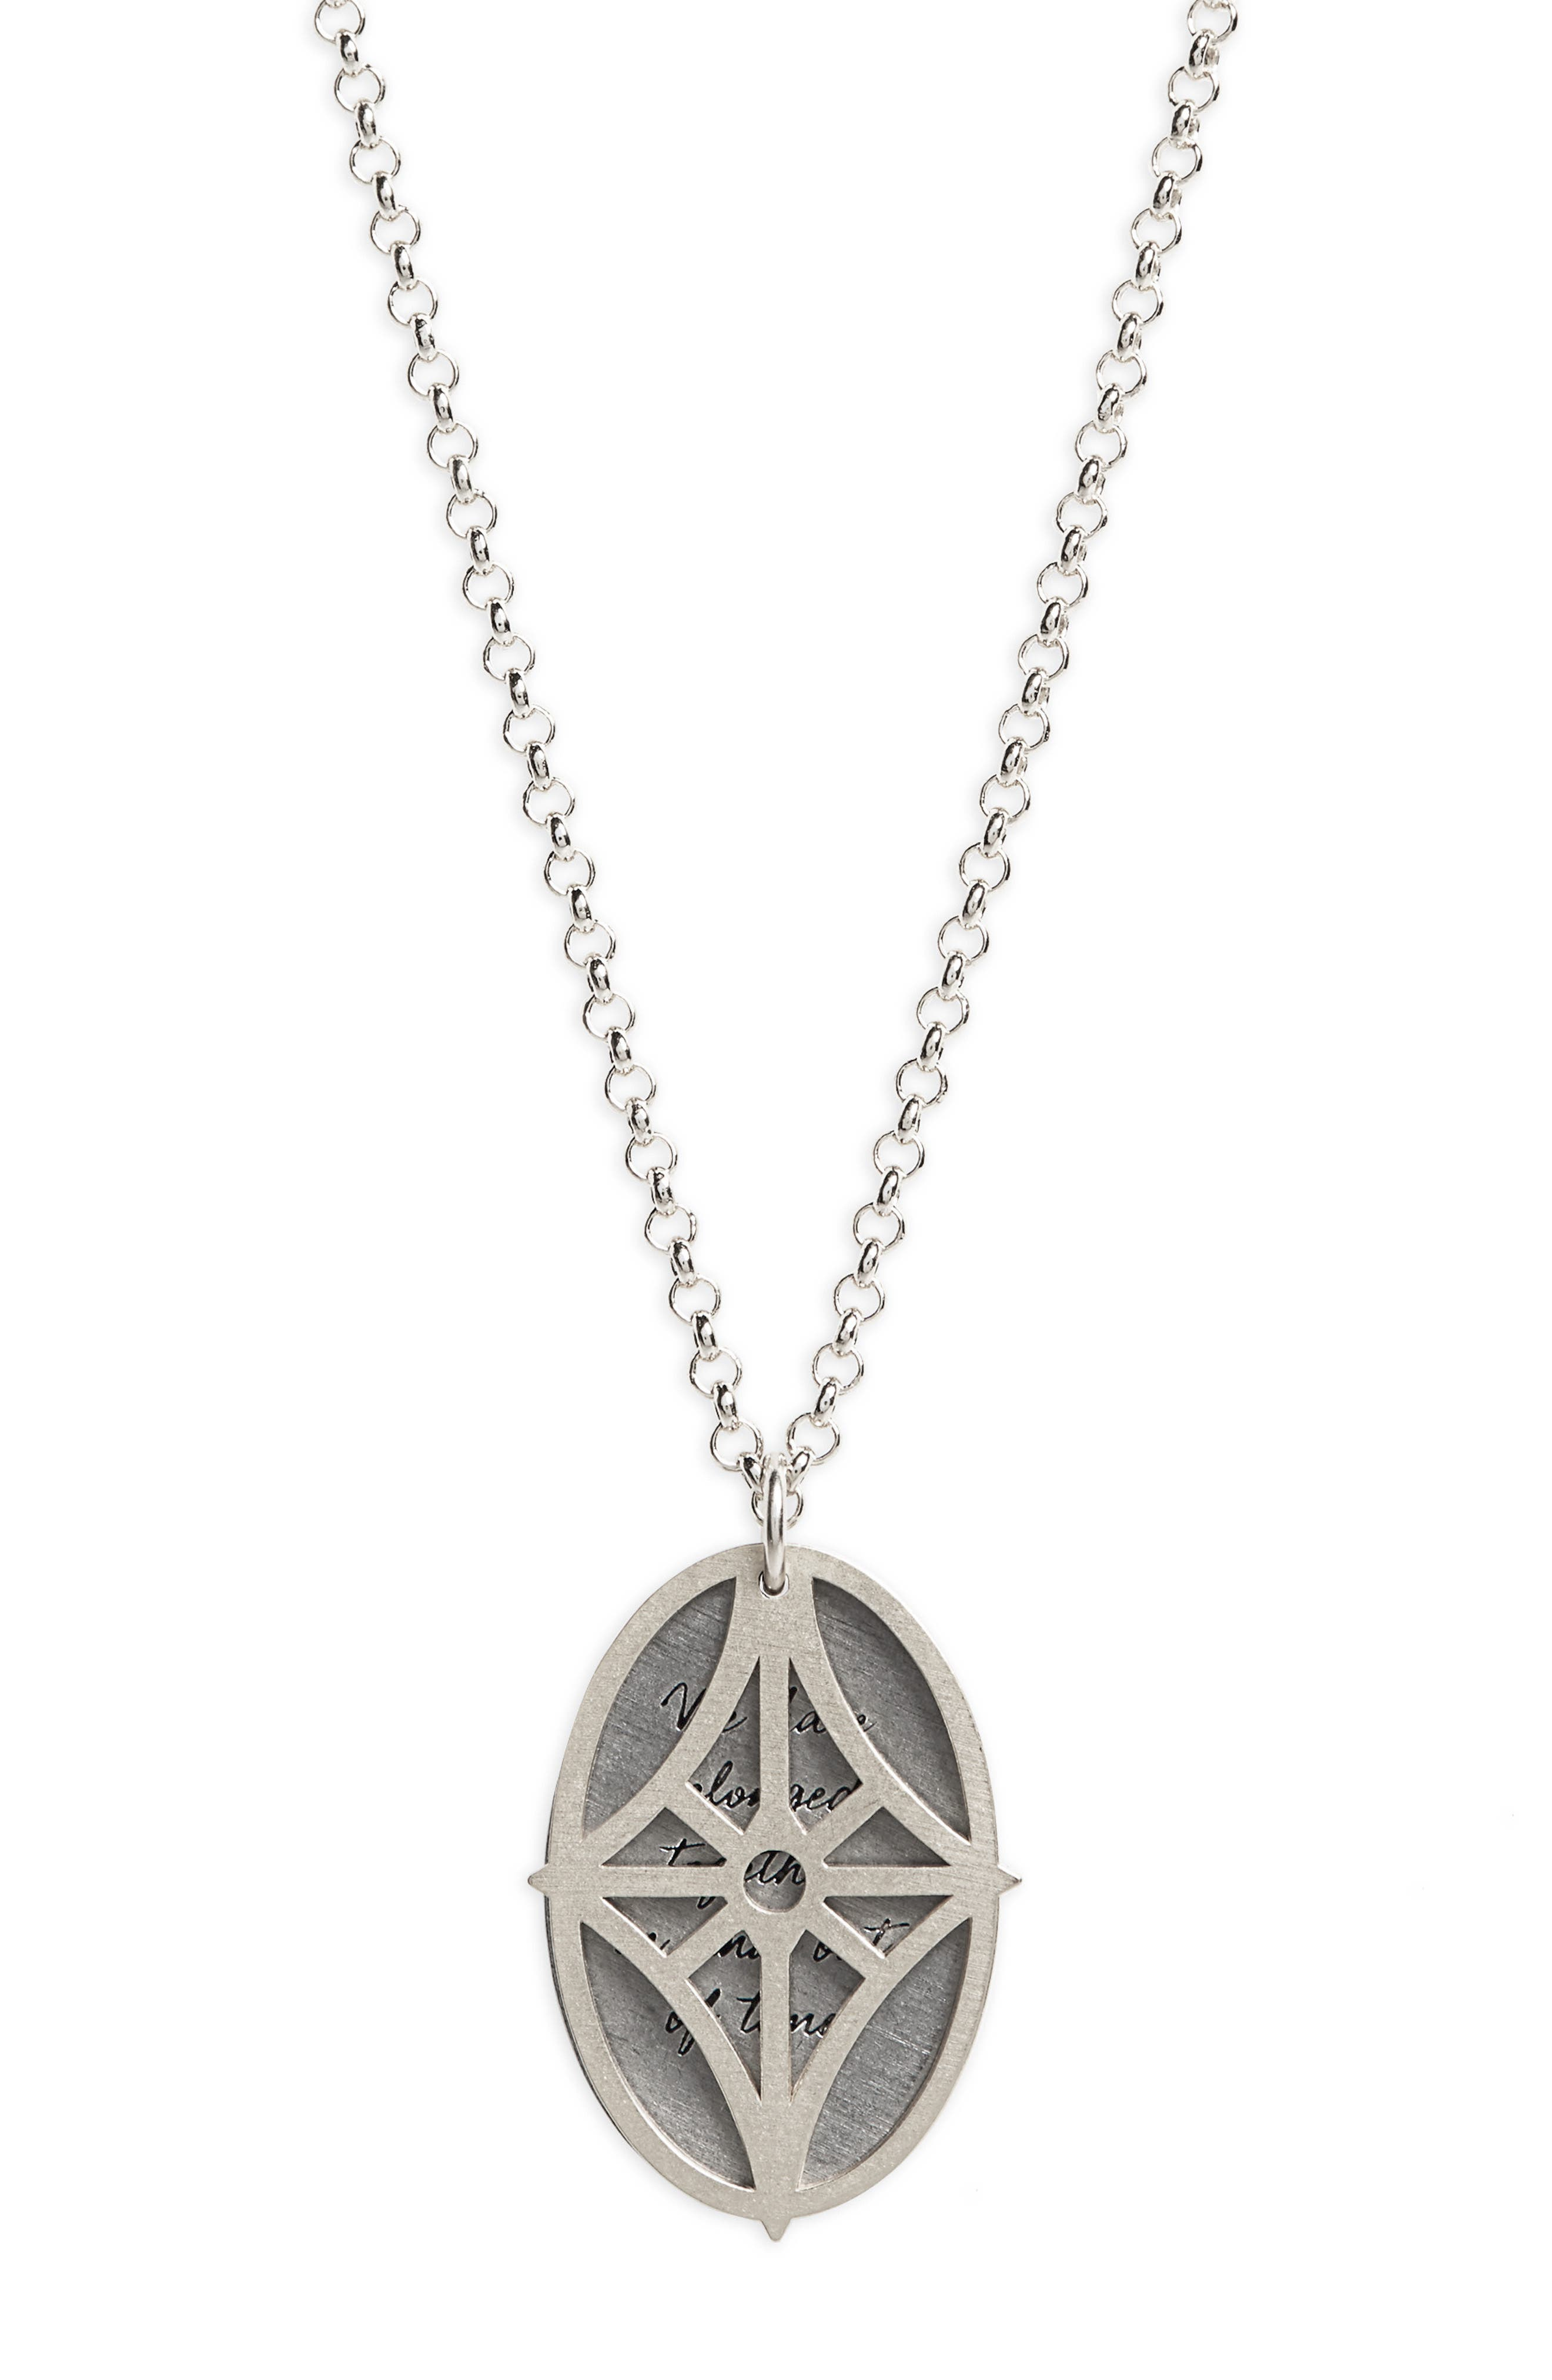 Legacy - We Have Belonged Together Tiered Pendant Necklace,                             Alternate thumbnail 3, color,                             Silver